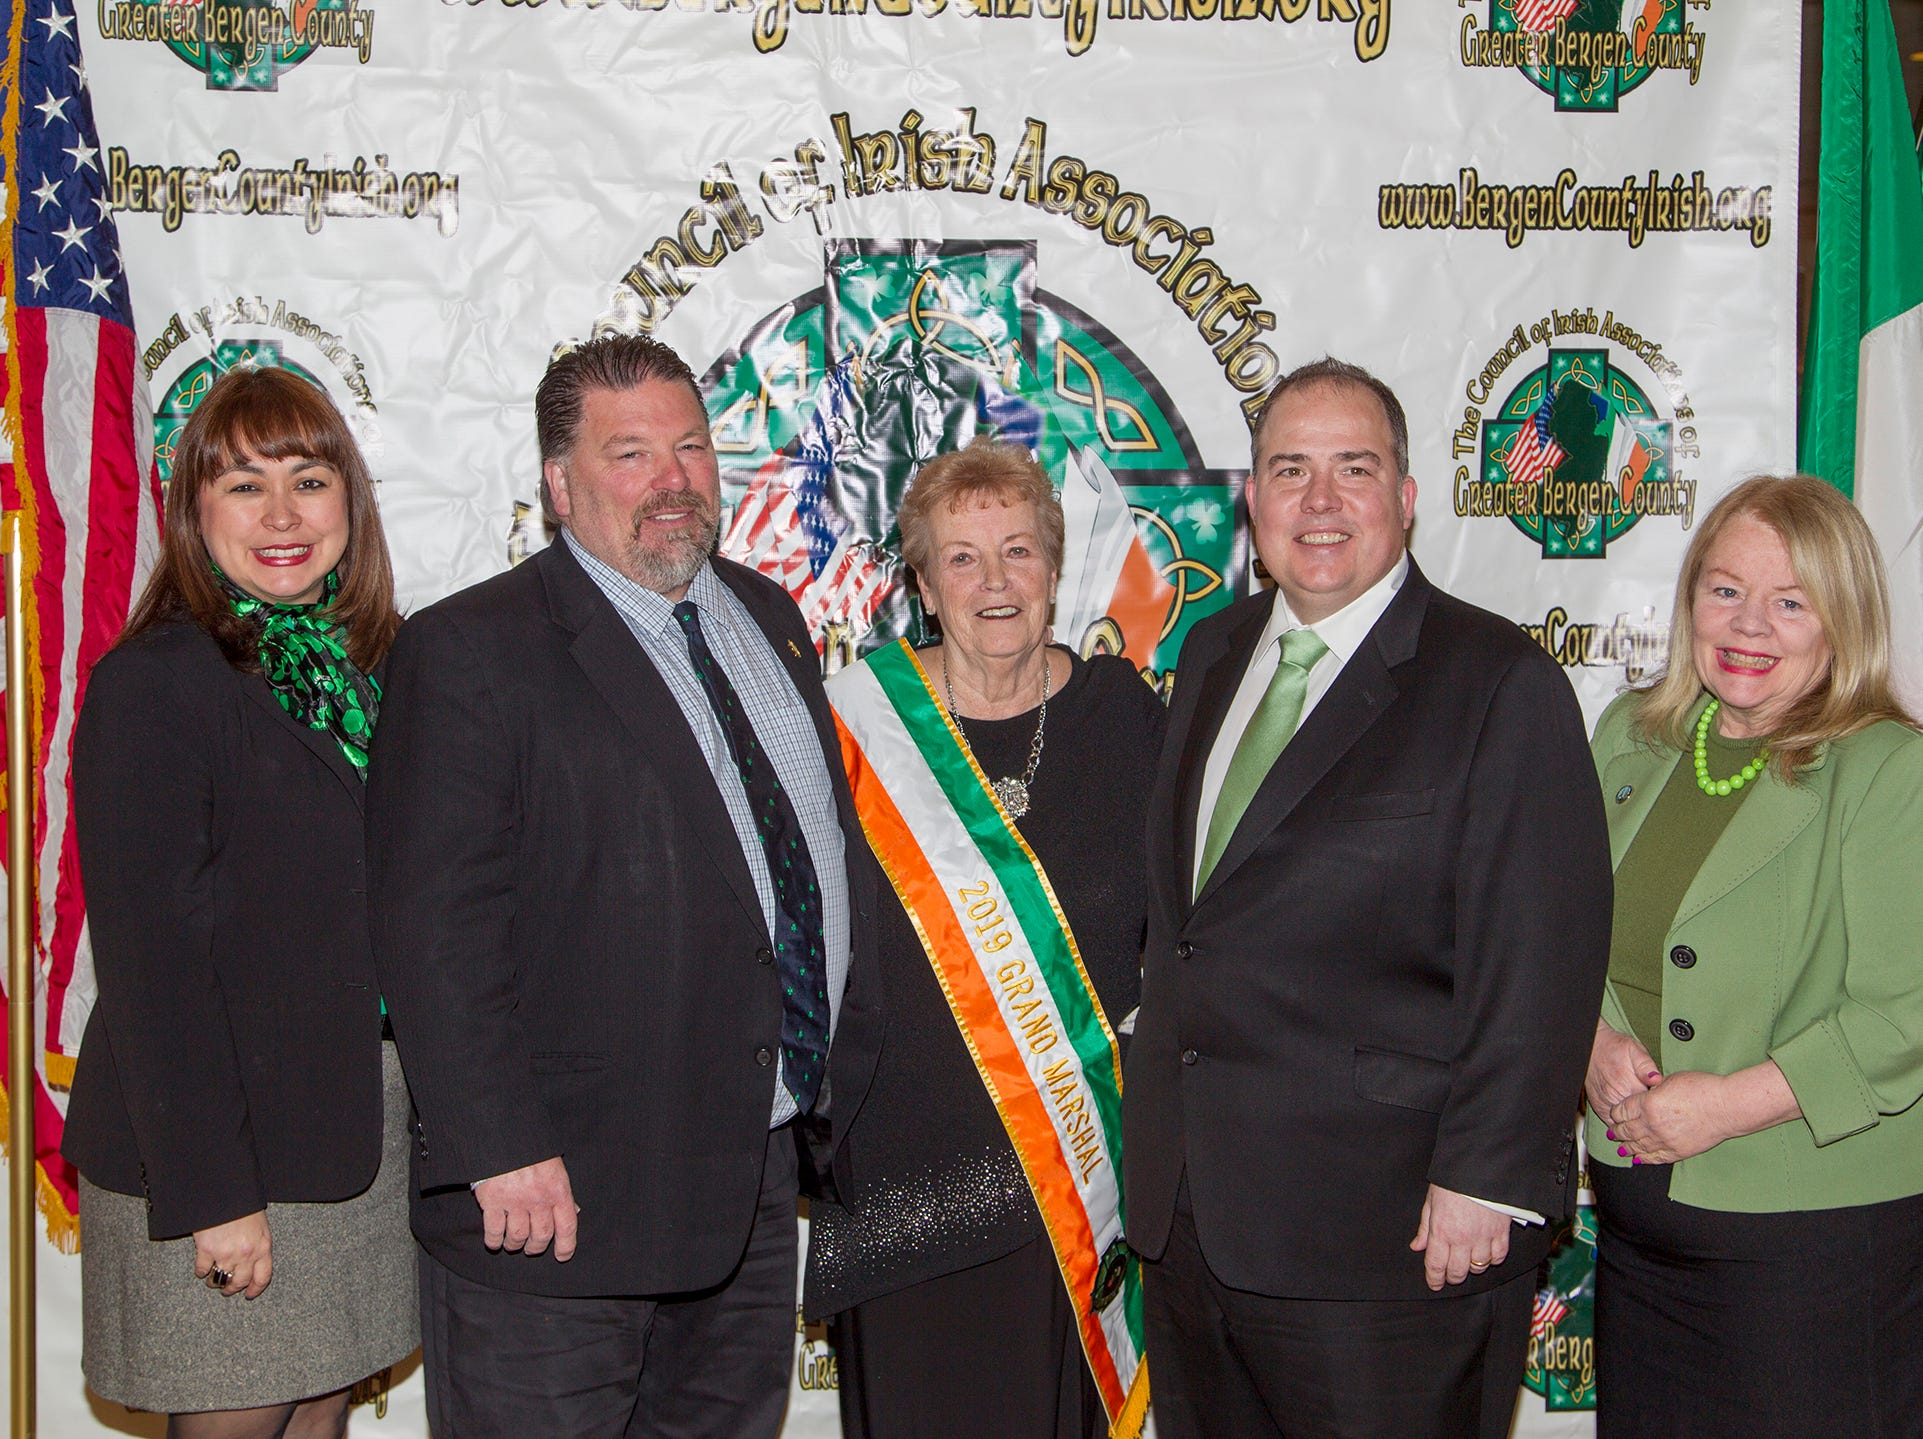 Freeholder Geramaine Ortiz, Freeholder Tom Sullivan, Patricia McLoughlin, Tom O'Reilly, Freeholder Mary Amorosi.  38th Annual St. Patrick's Day parade Installation Dance at The Graycliff in Moonachie. 2/23/2019